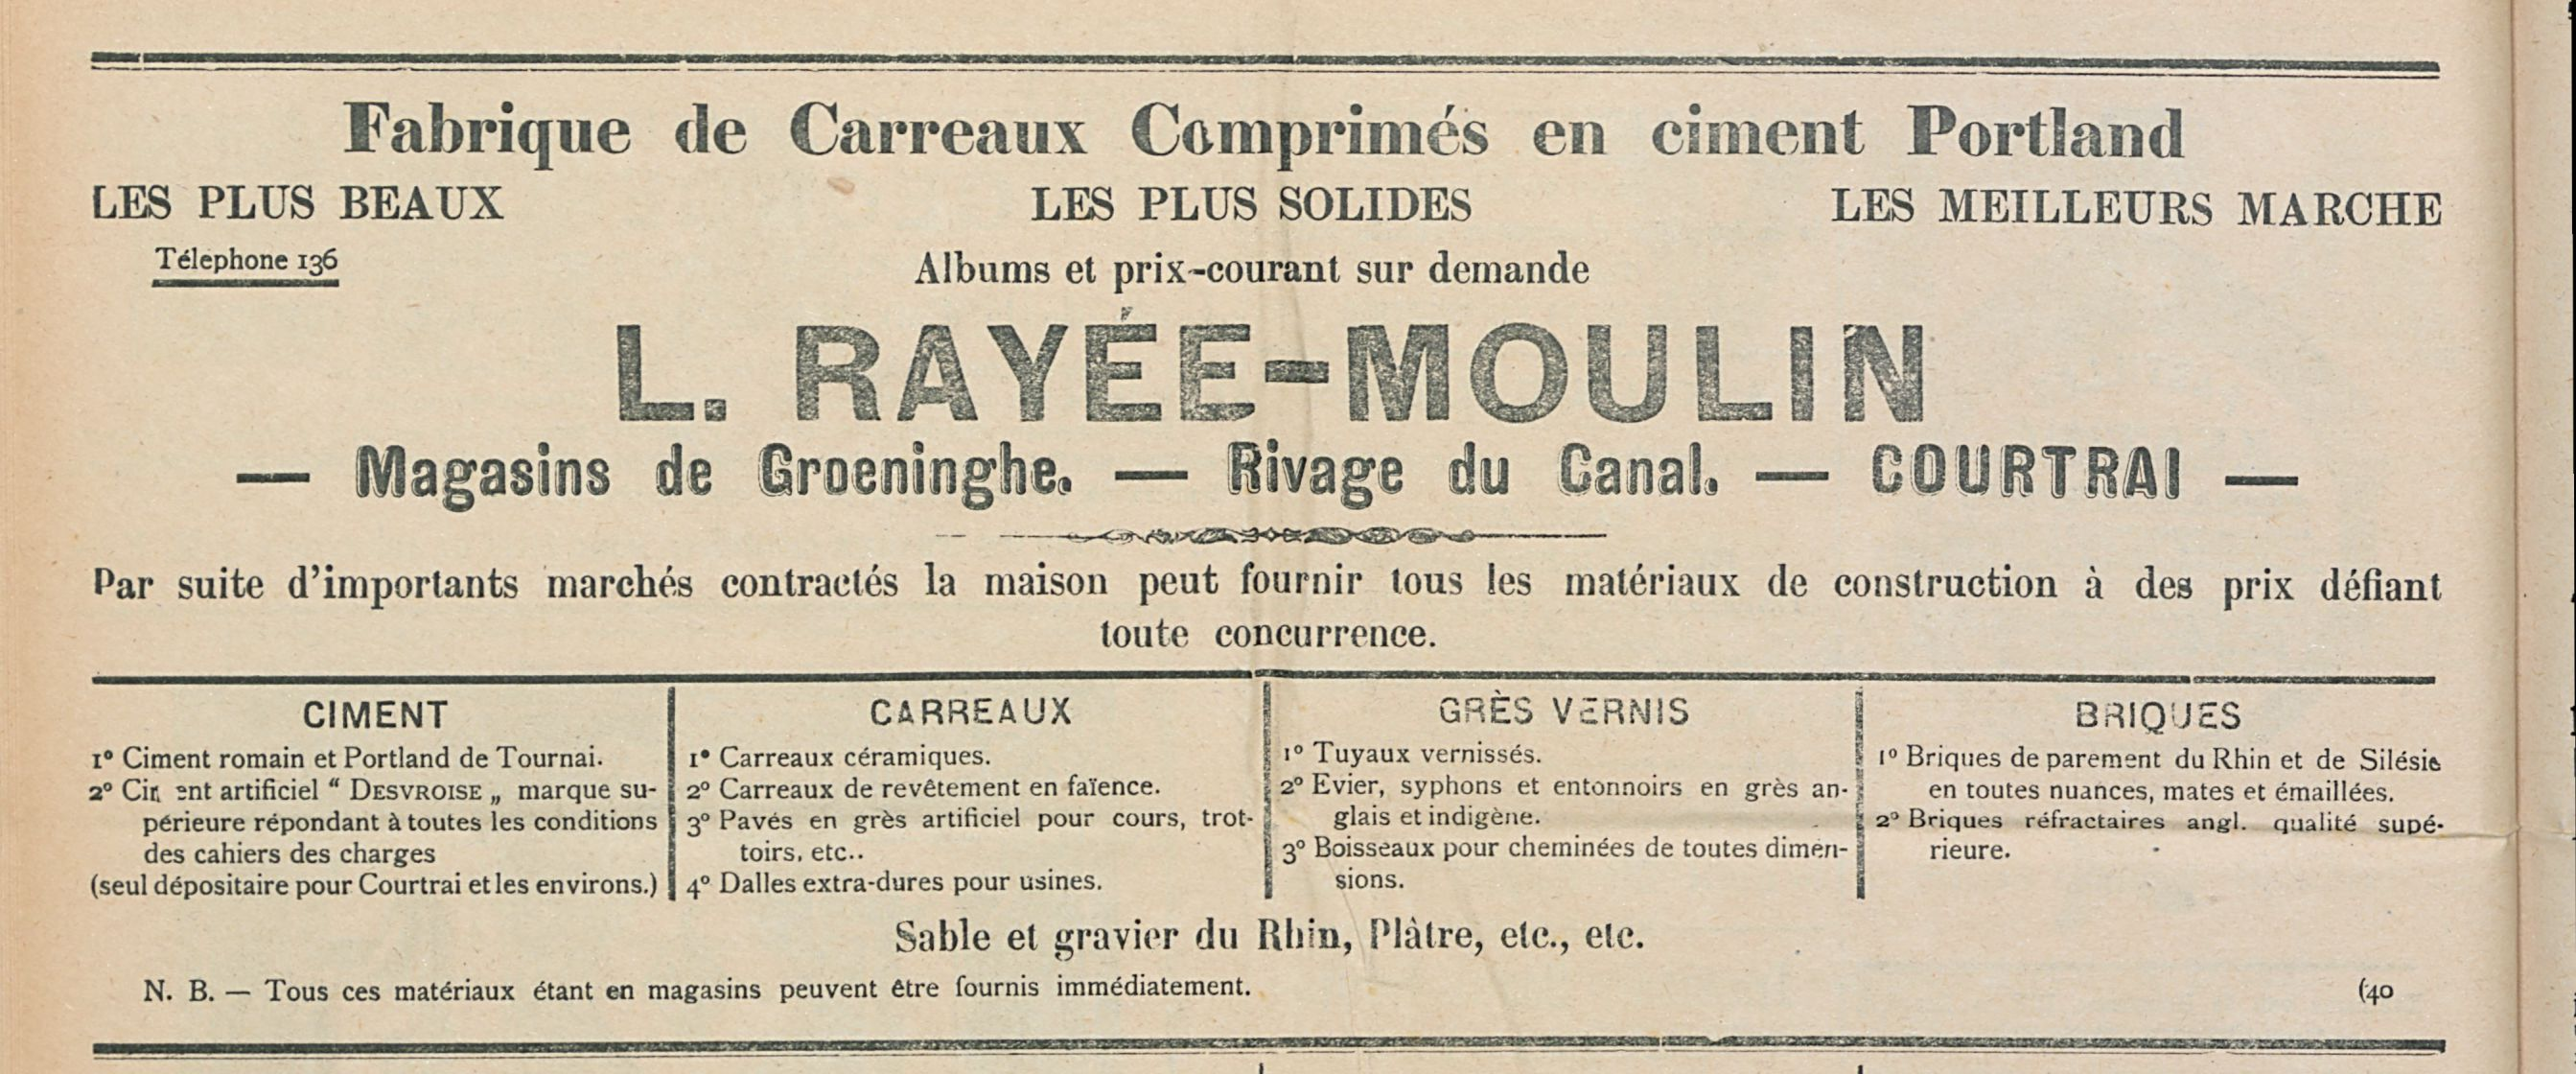 L.RAYEE MOULIN